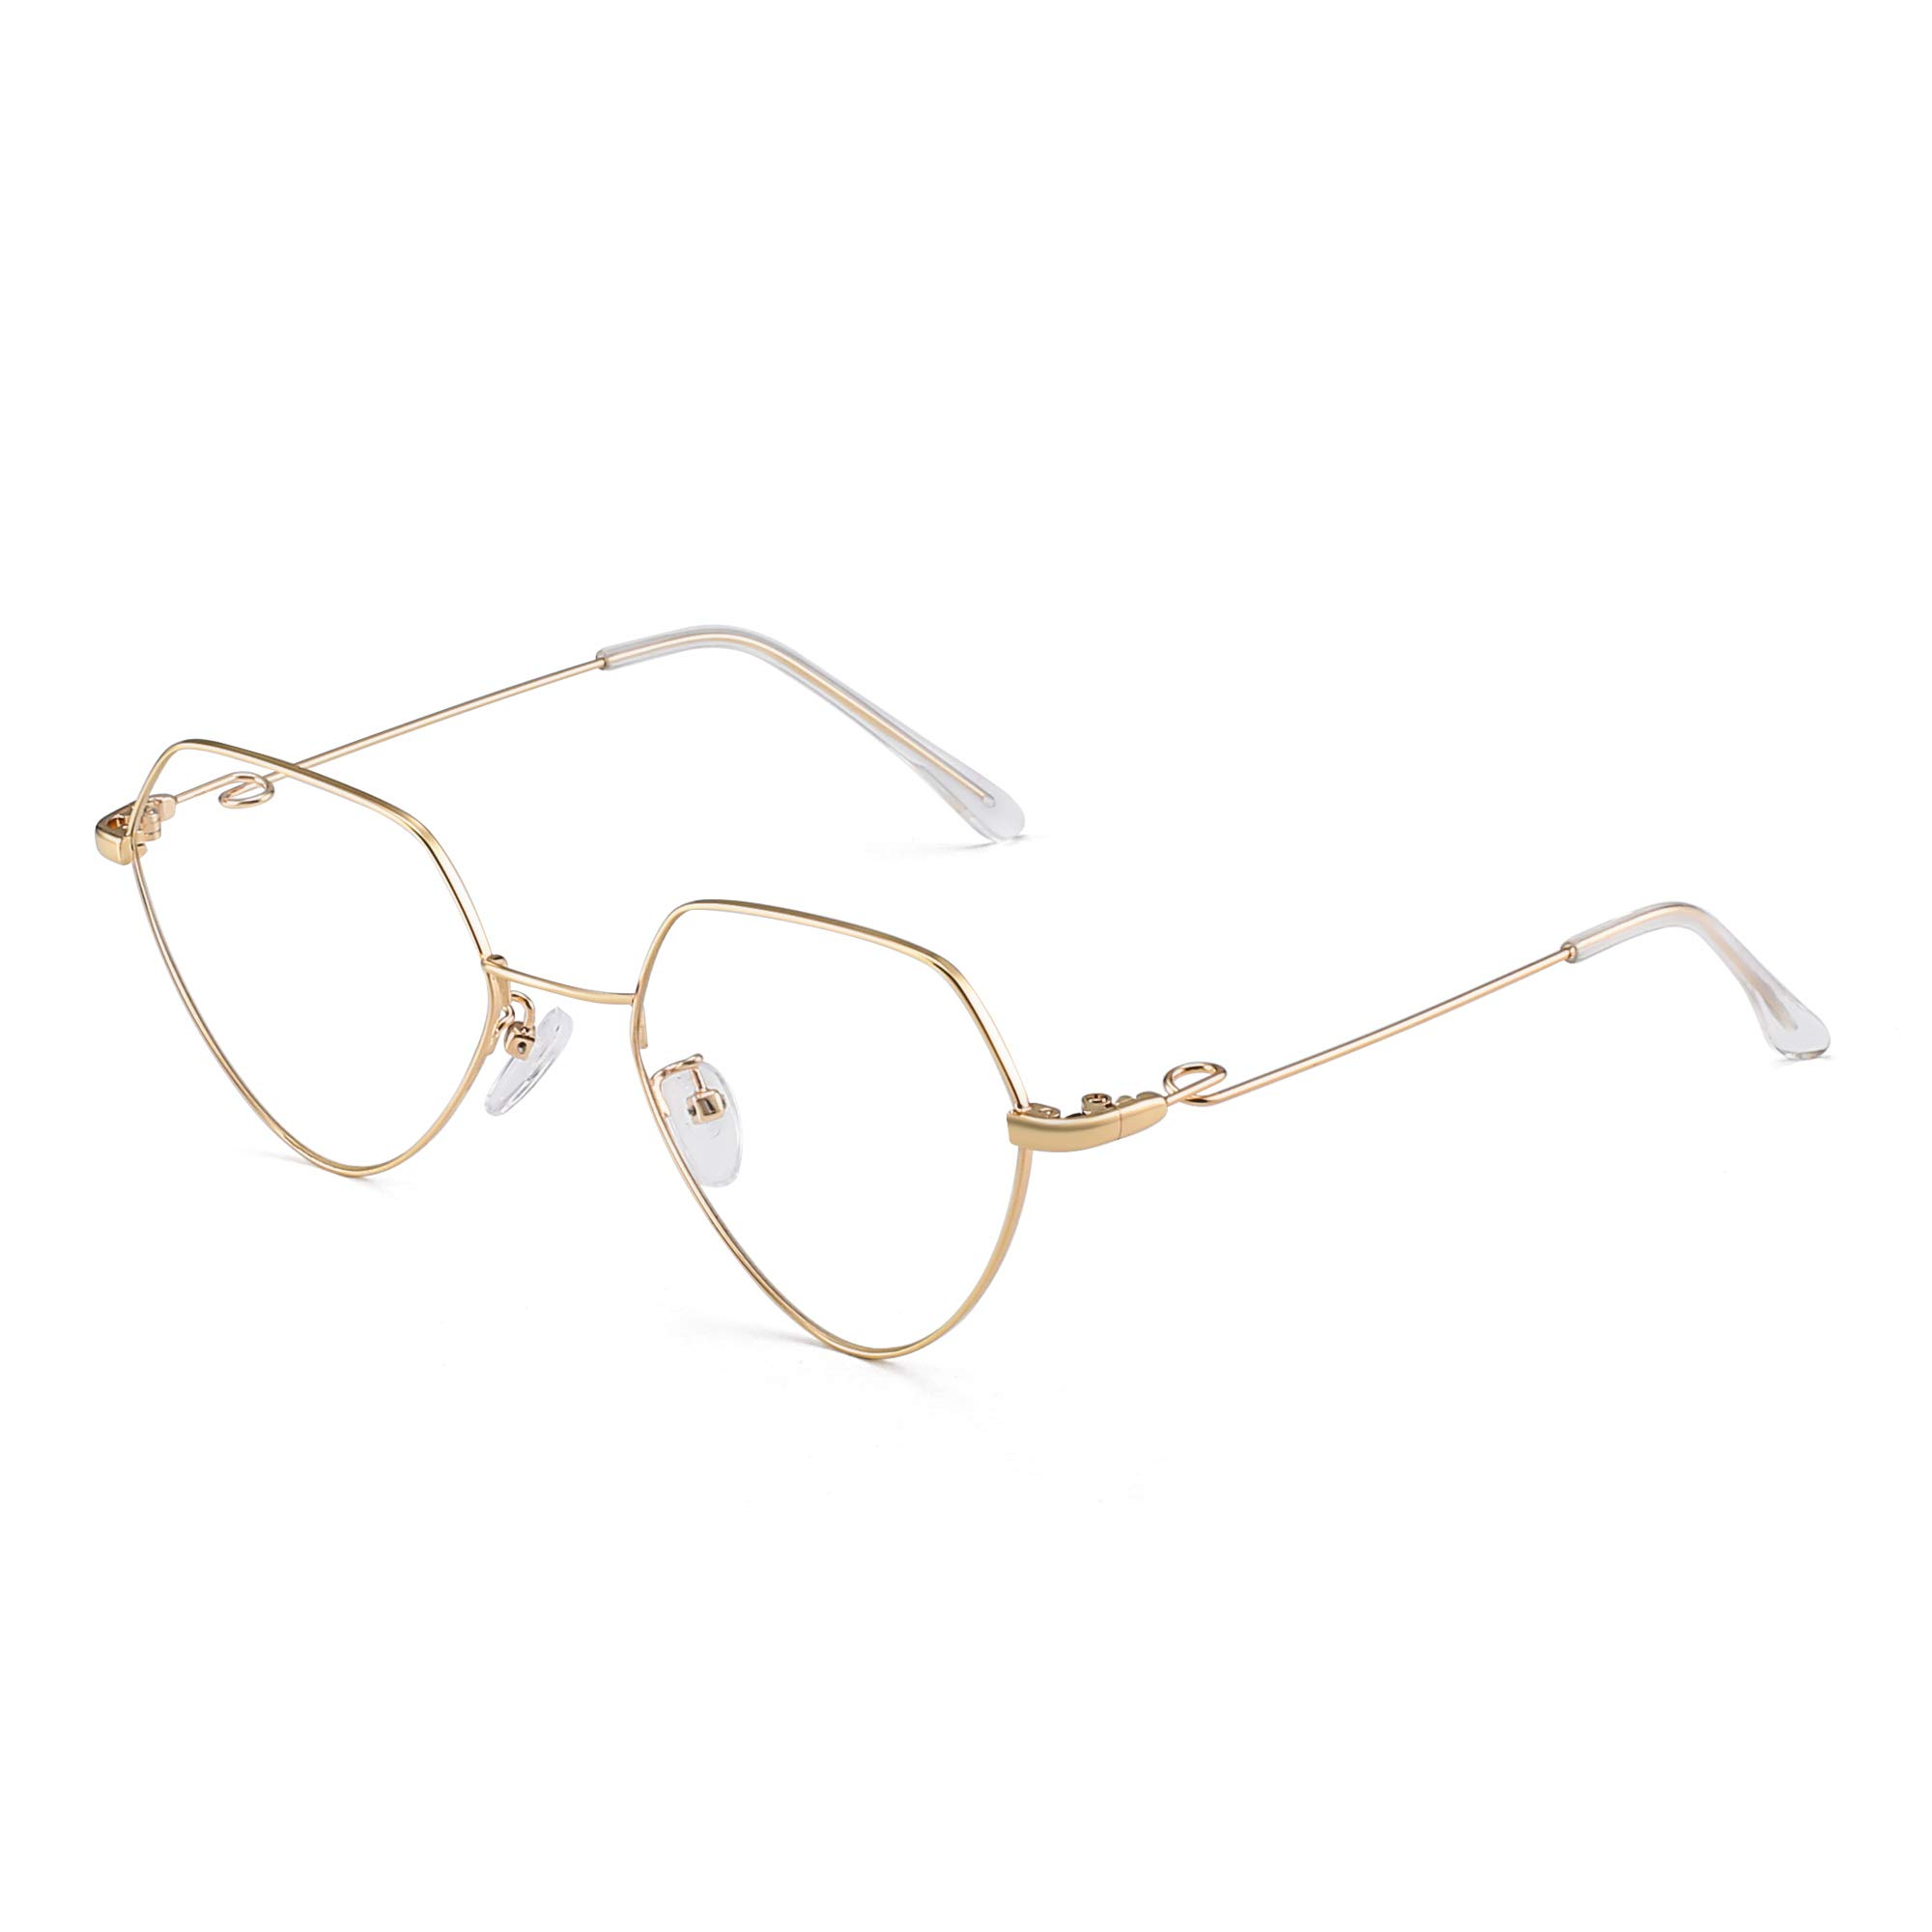 Fashion Heart Rx-able Eyeglasses Metal Wire Optical Glasses Frame for Women Gold